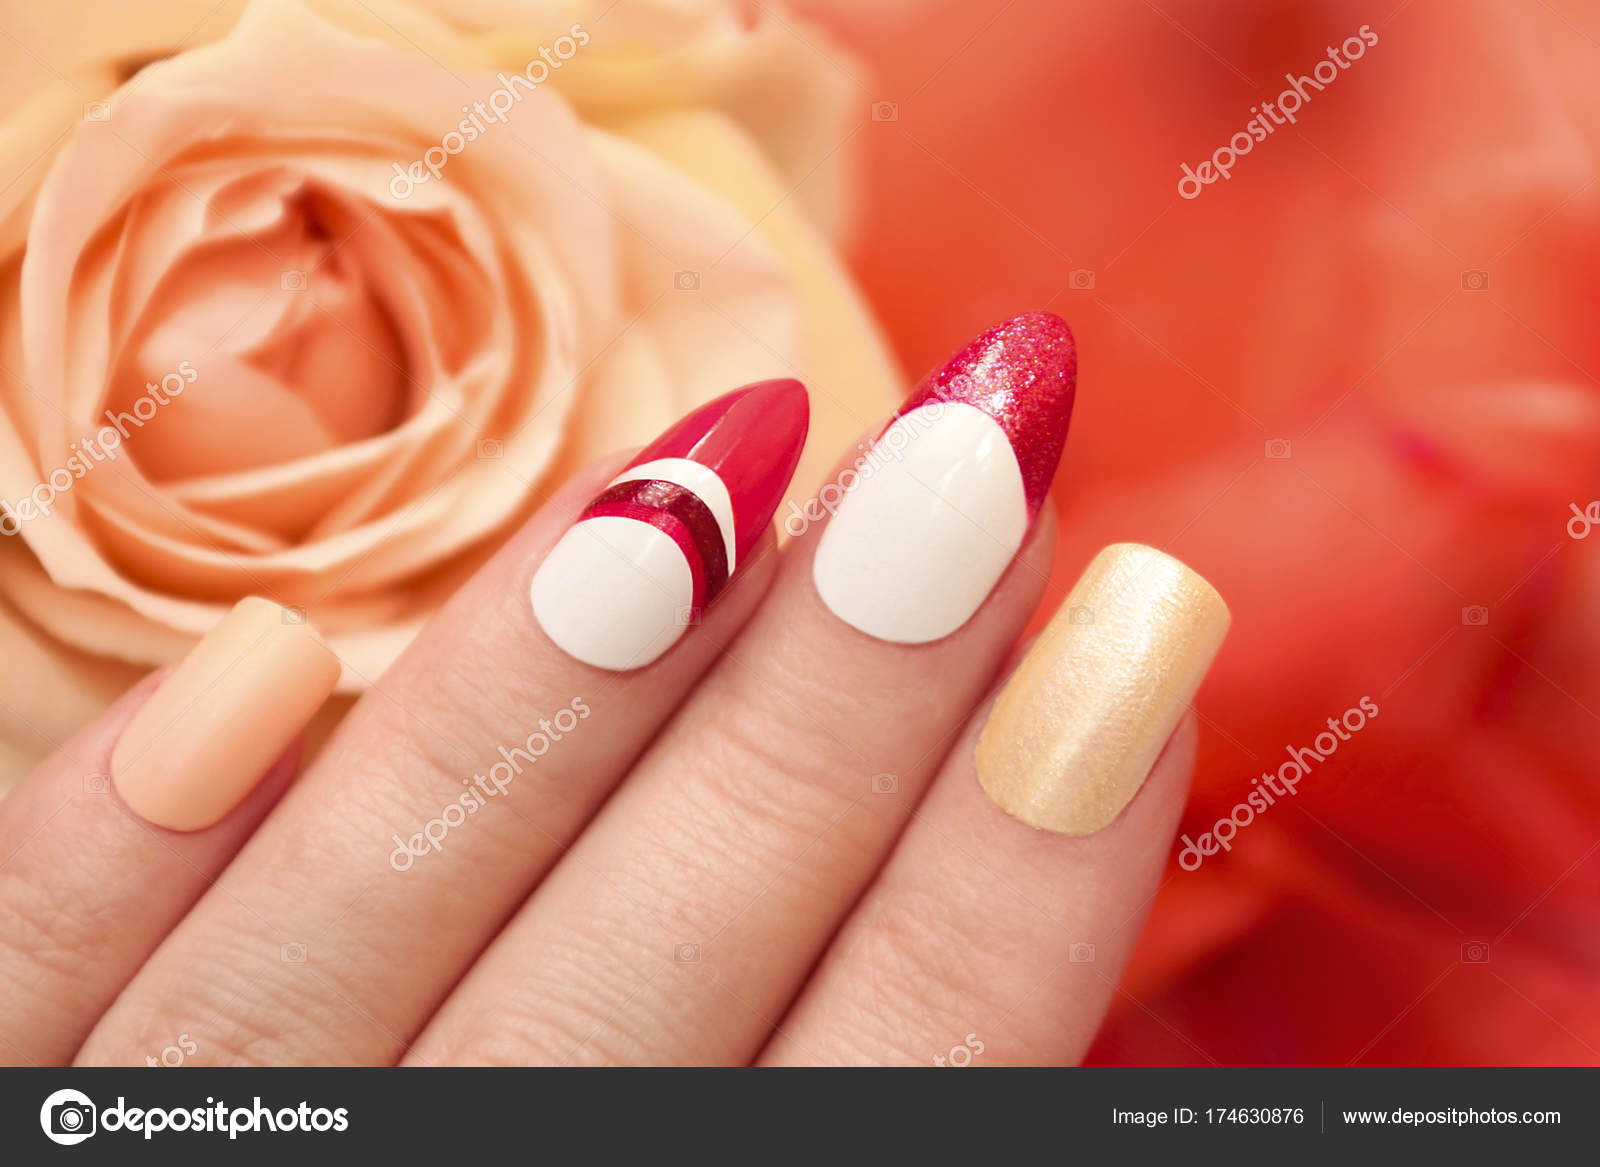 Square Oval Nails Stock Photo C Marigo 174630876